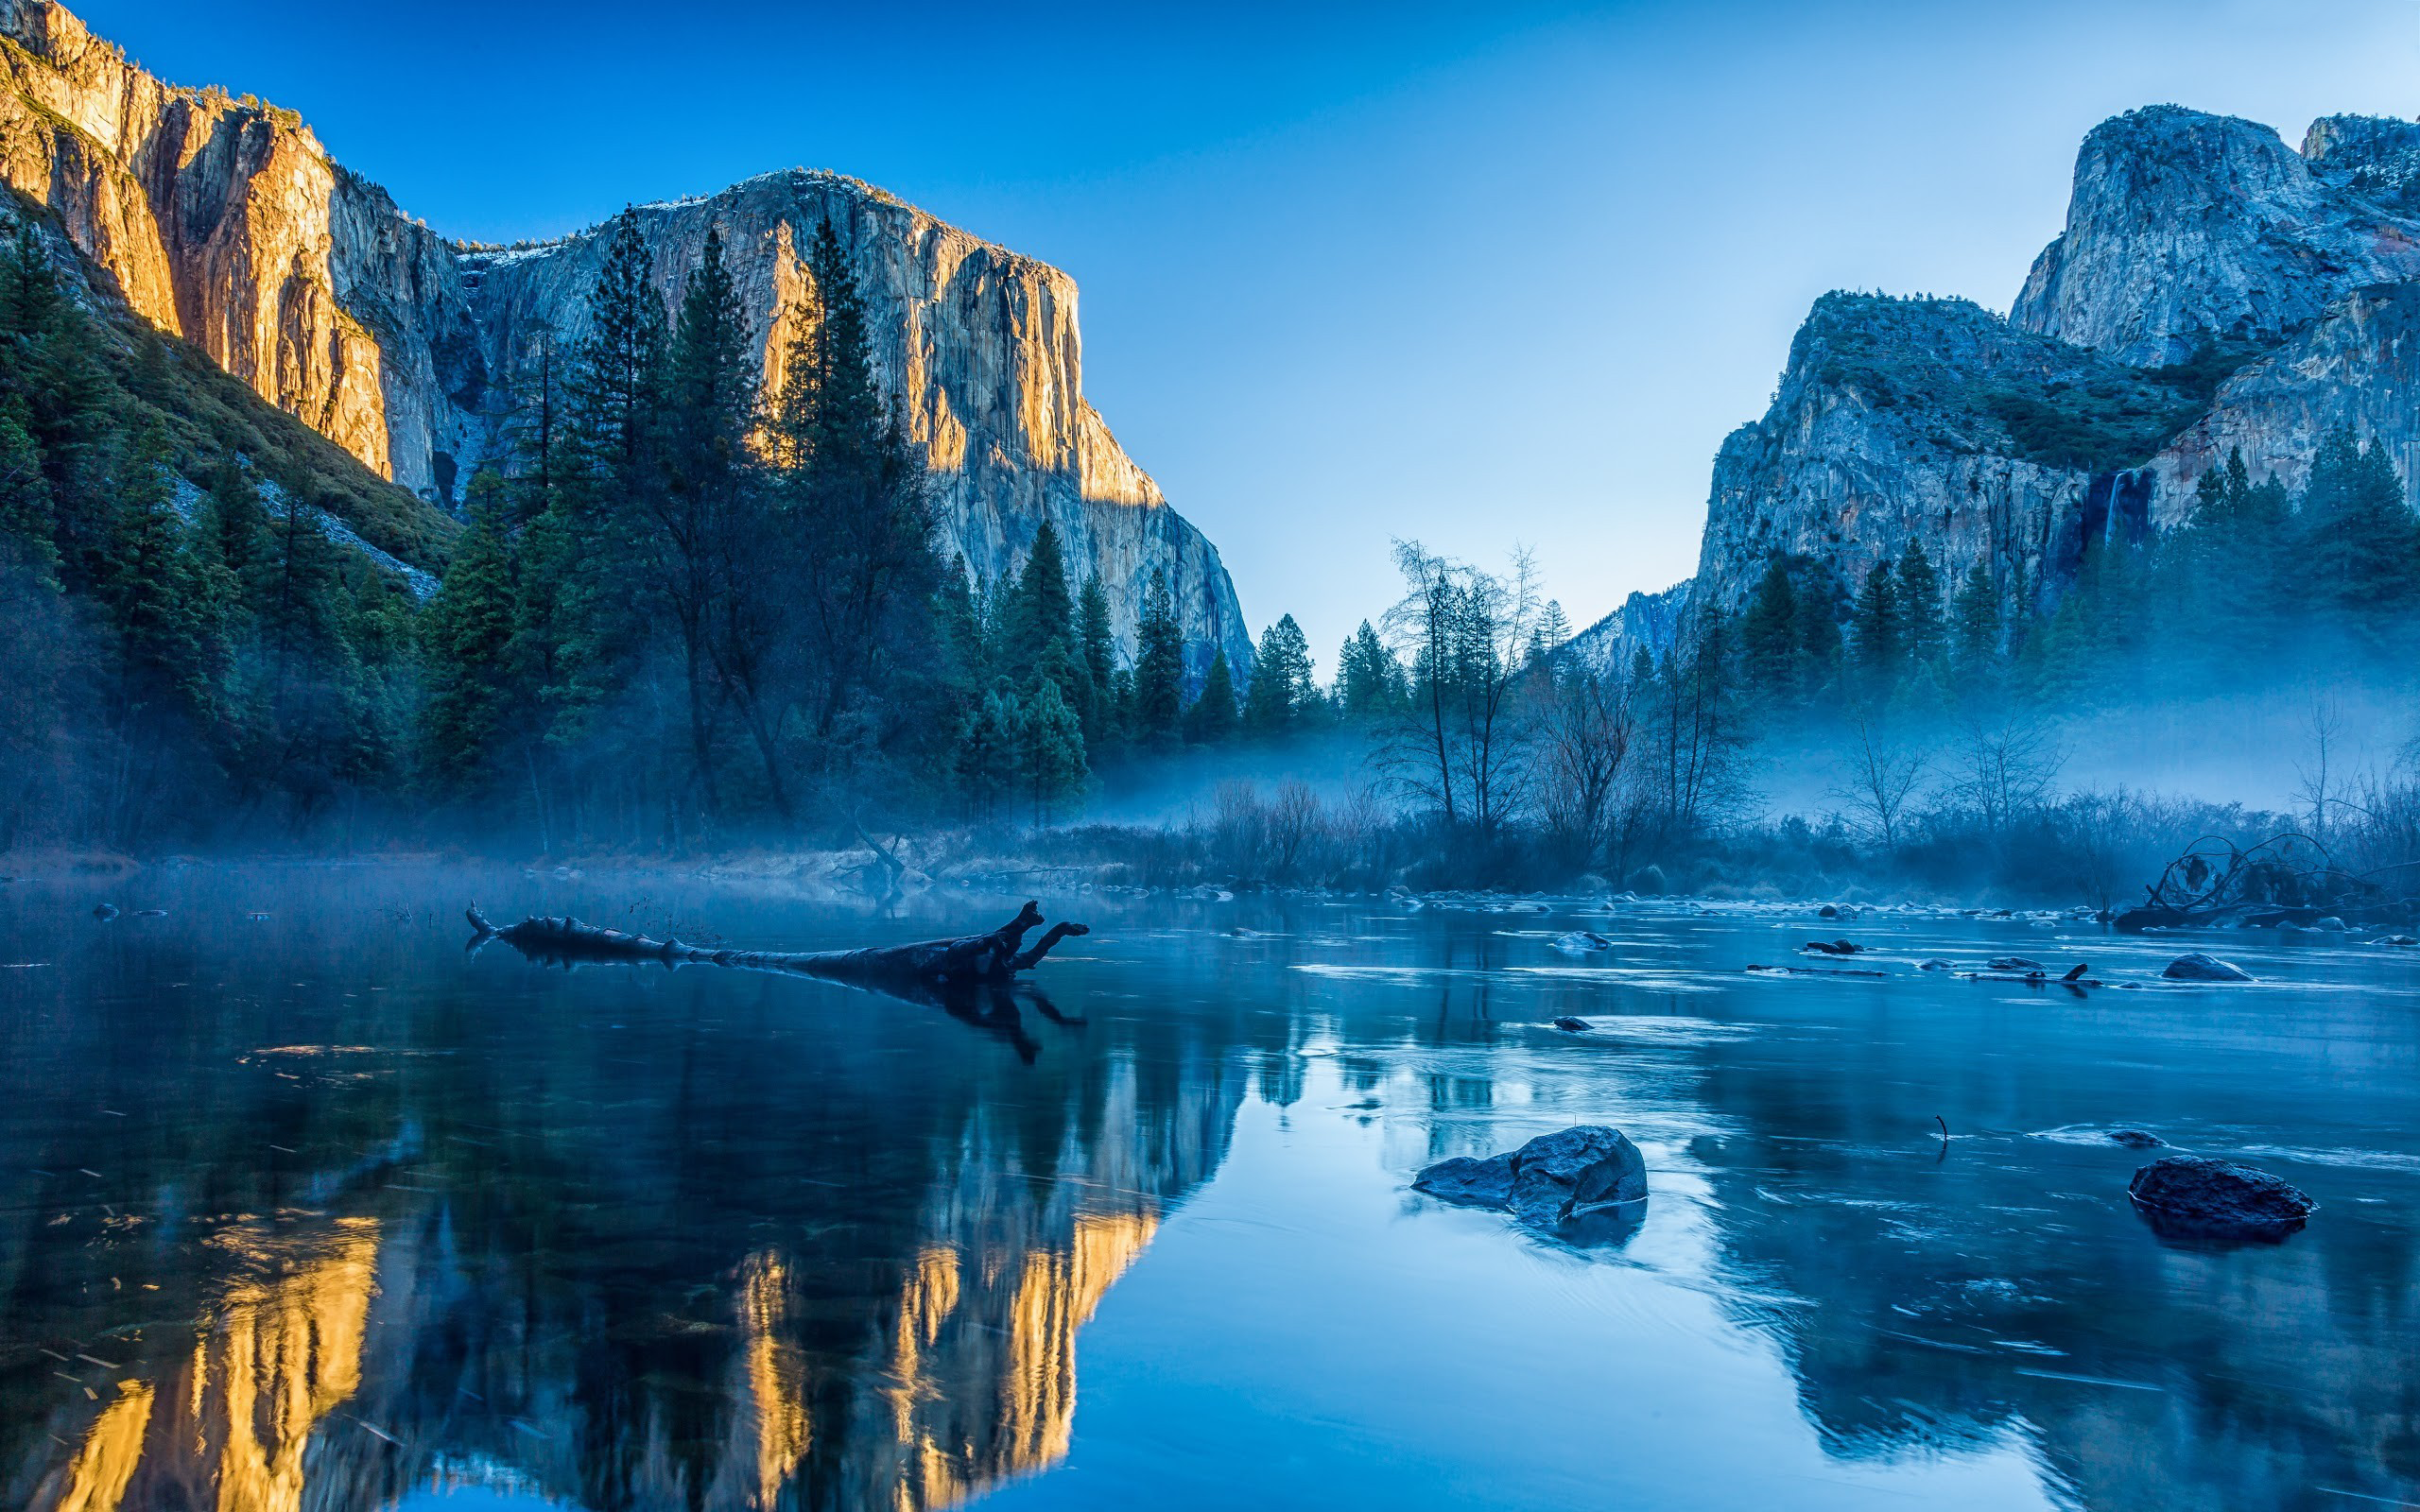 Yosemite national park wallpapers pictures images - Yosemite national park hd wallpaper ...